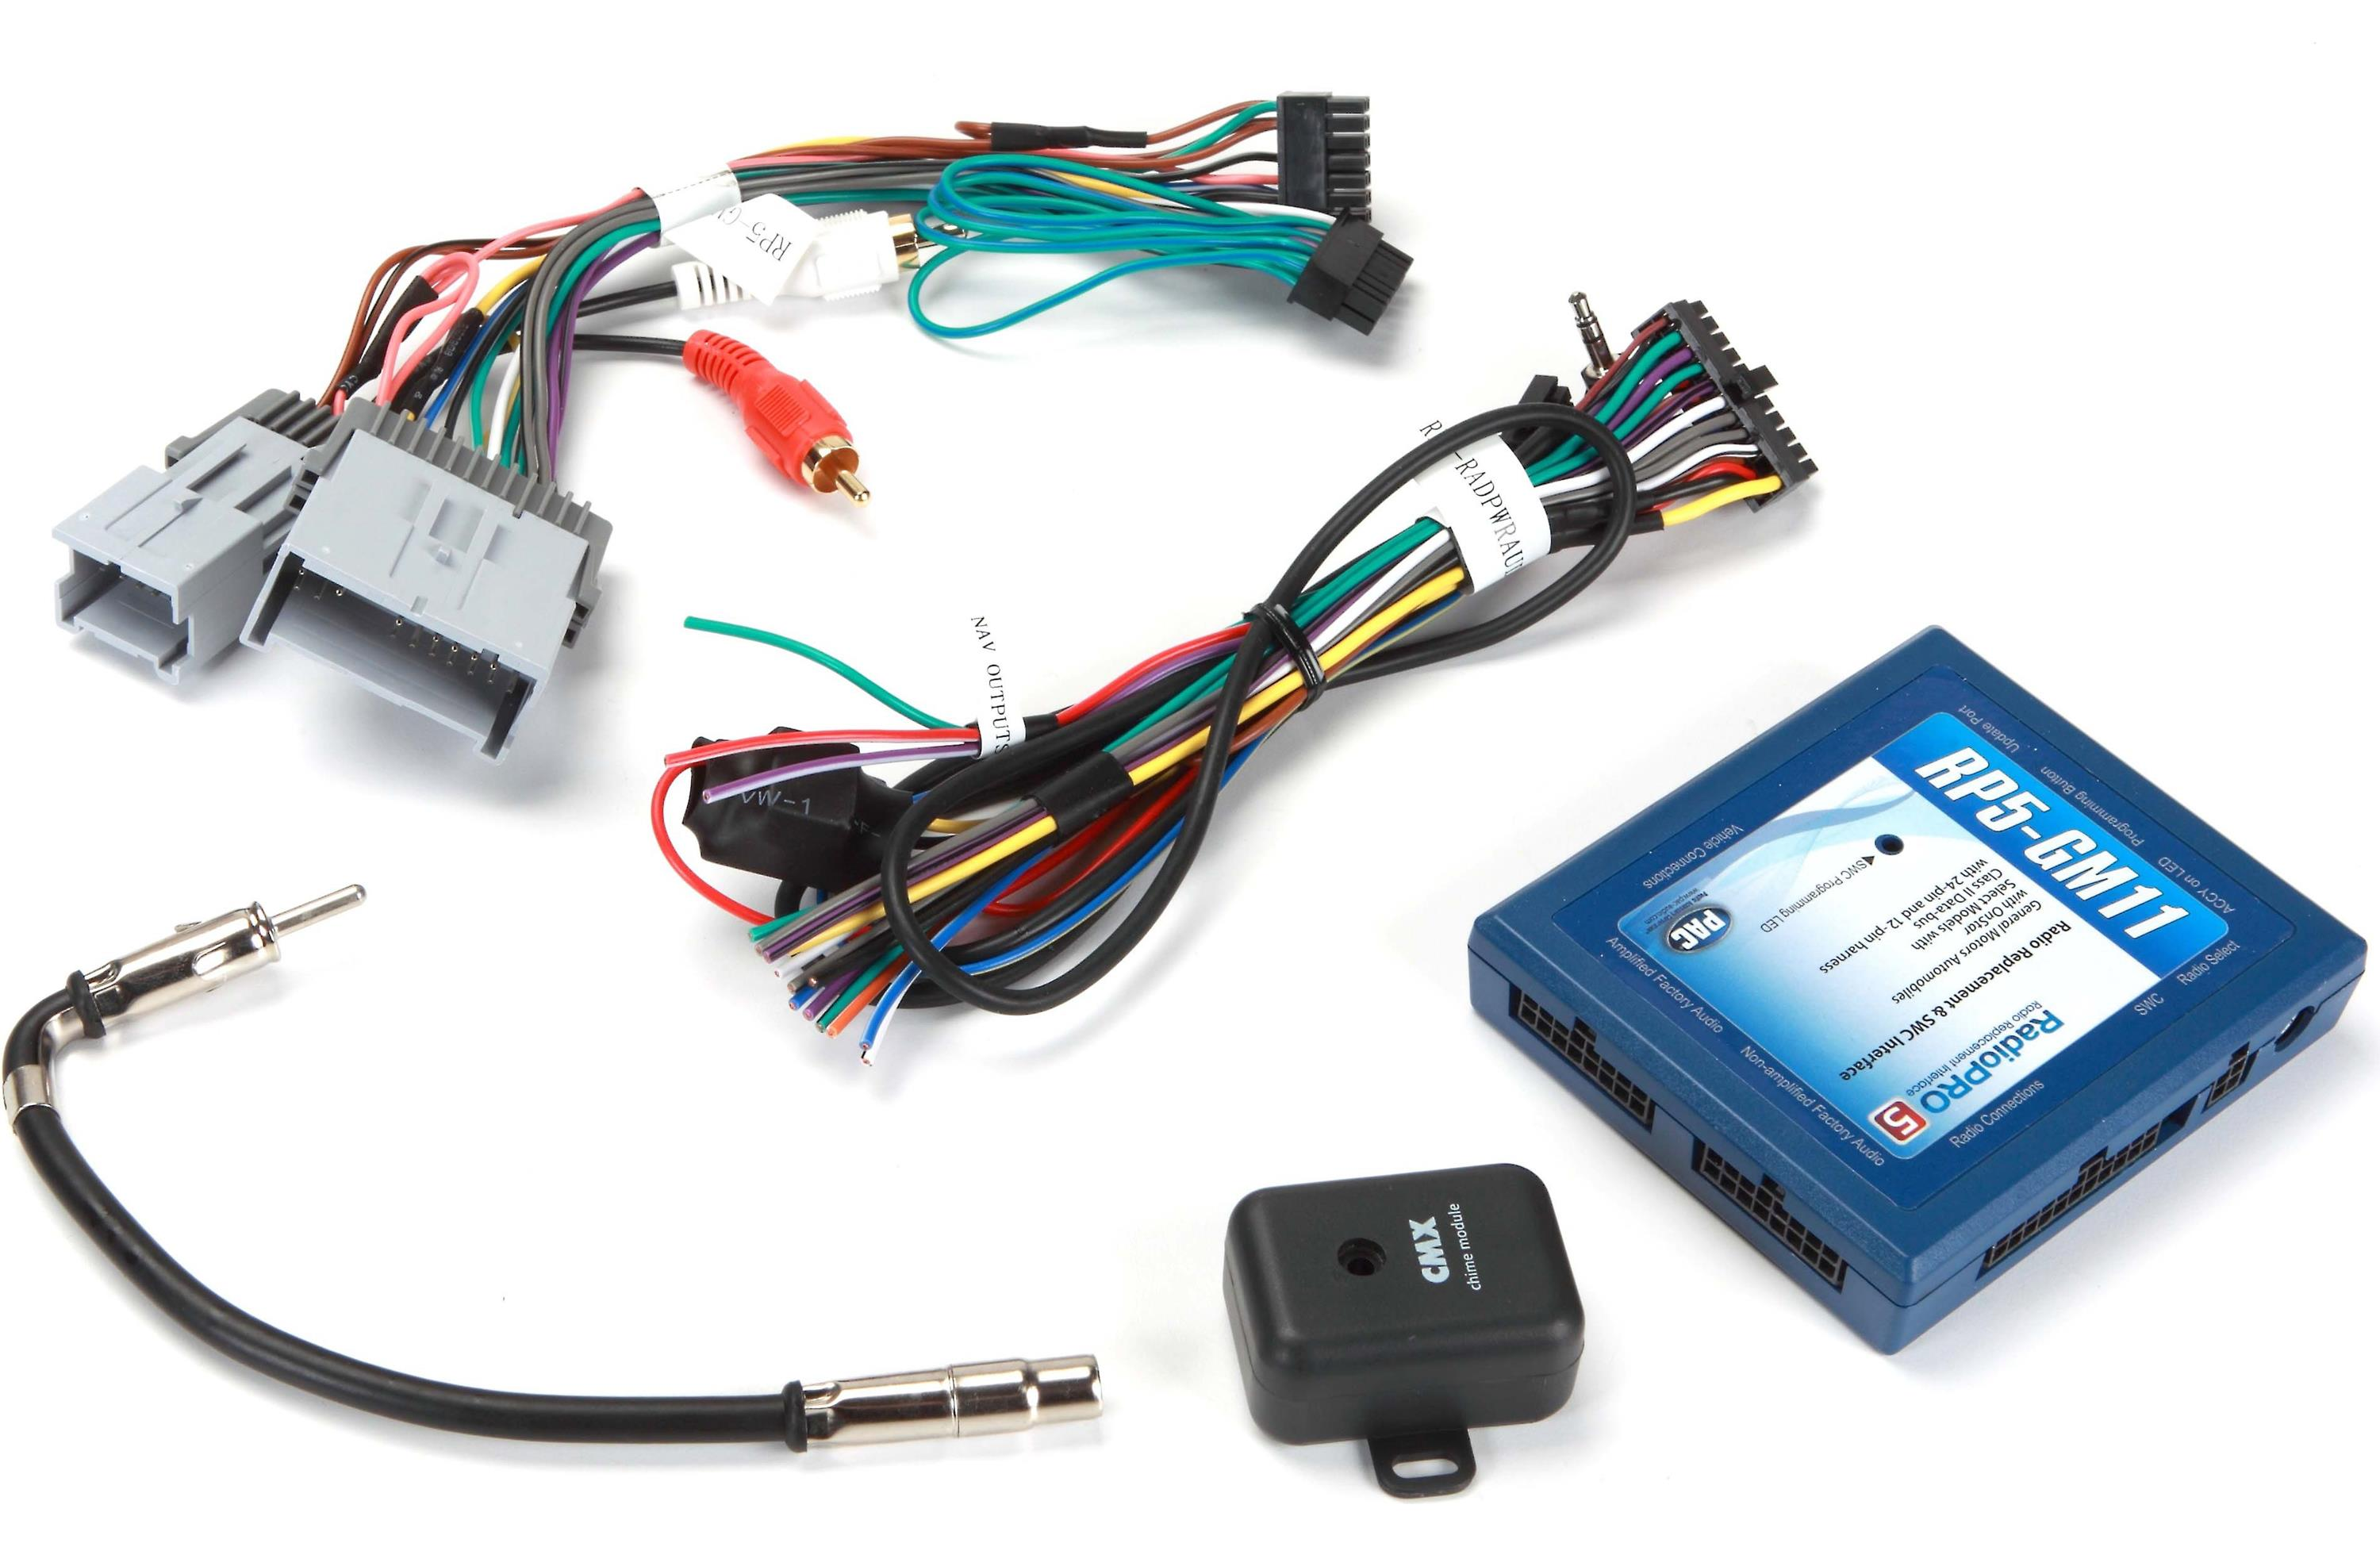 scosche stereo wiring diagrams for 2004 chevy aveo pac rp5 gm11 car audio giants  pac rp5 gm11 car audio giants